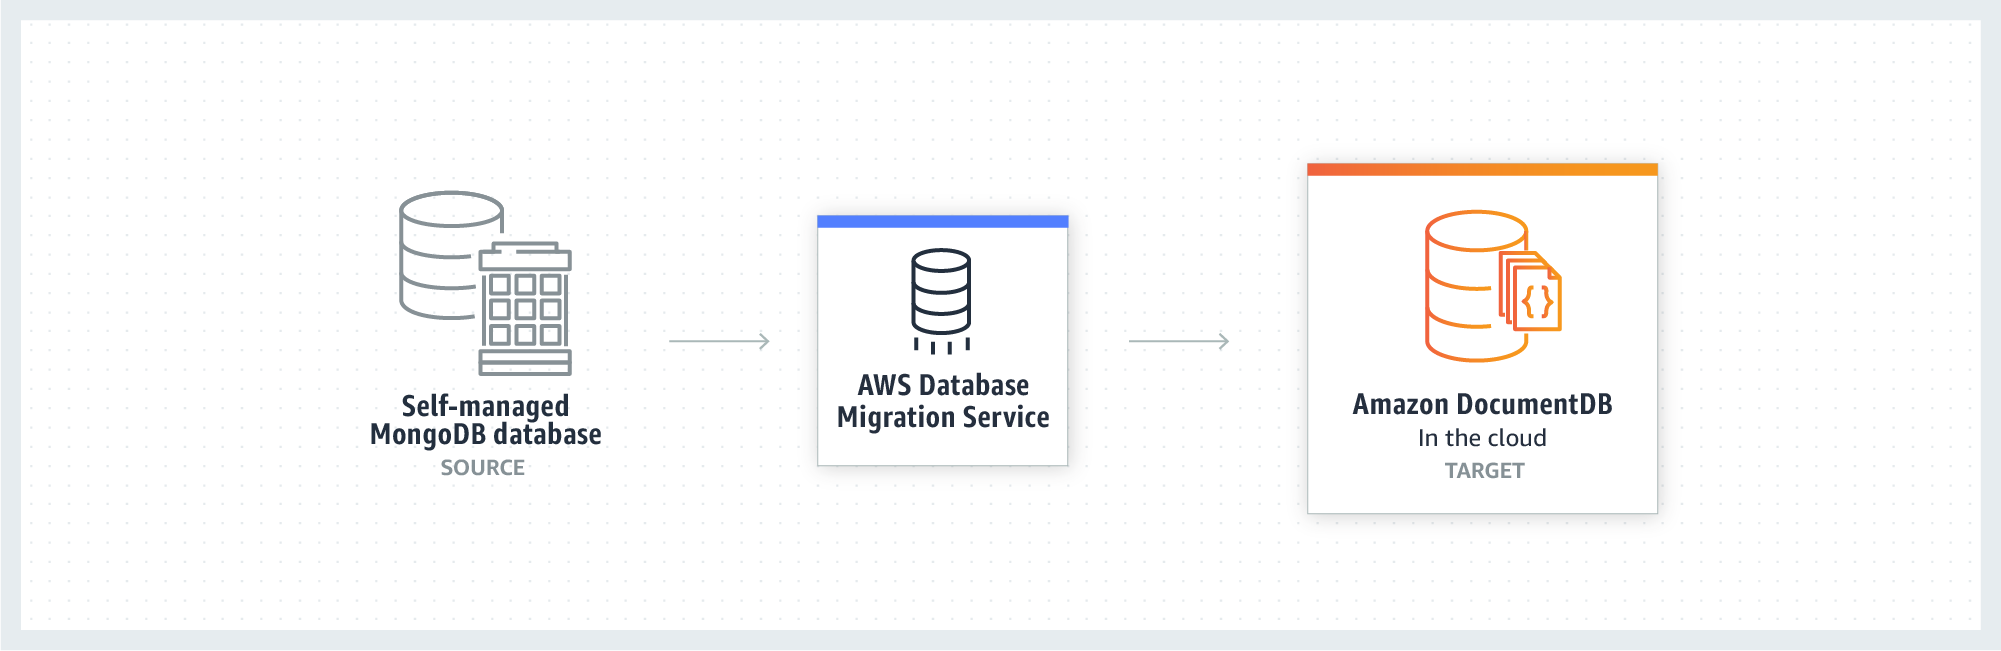 Migrate MongoDB workloads to Amazon DocumentDB